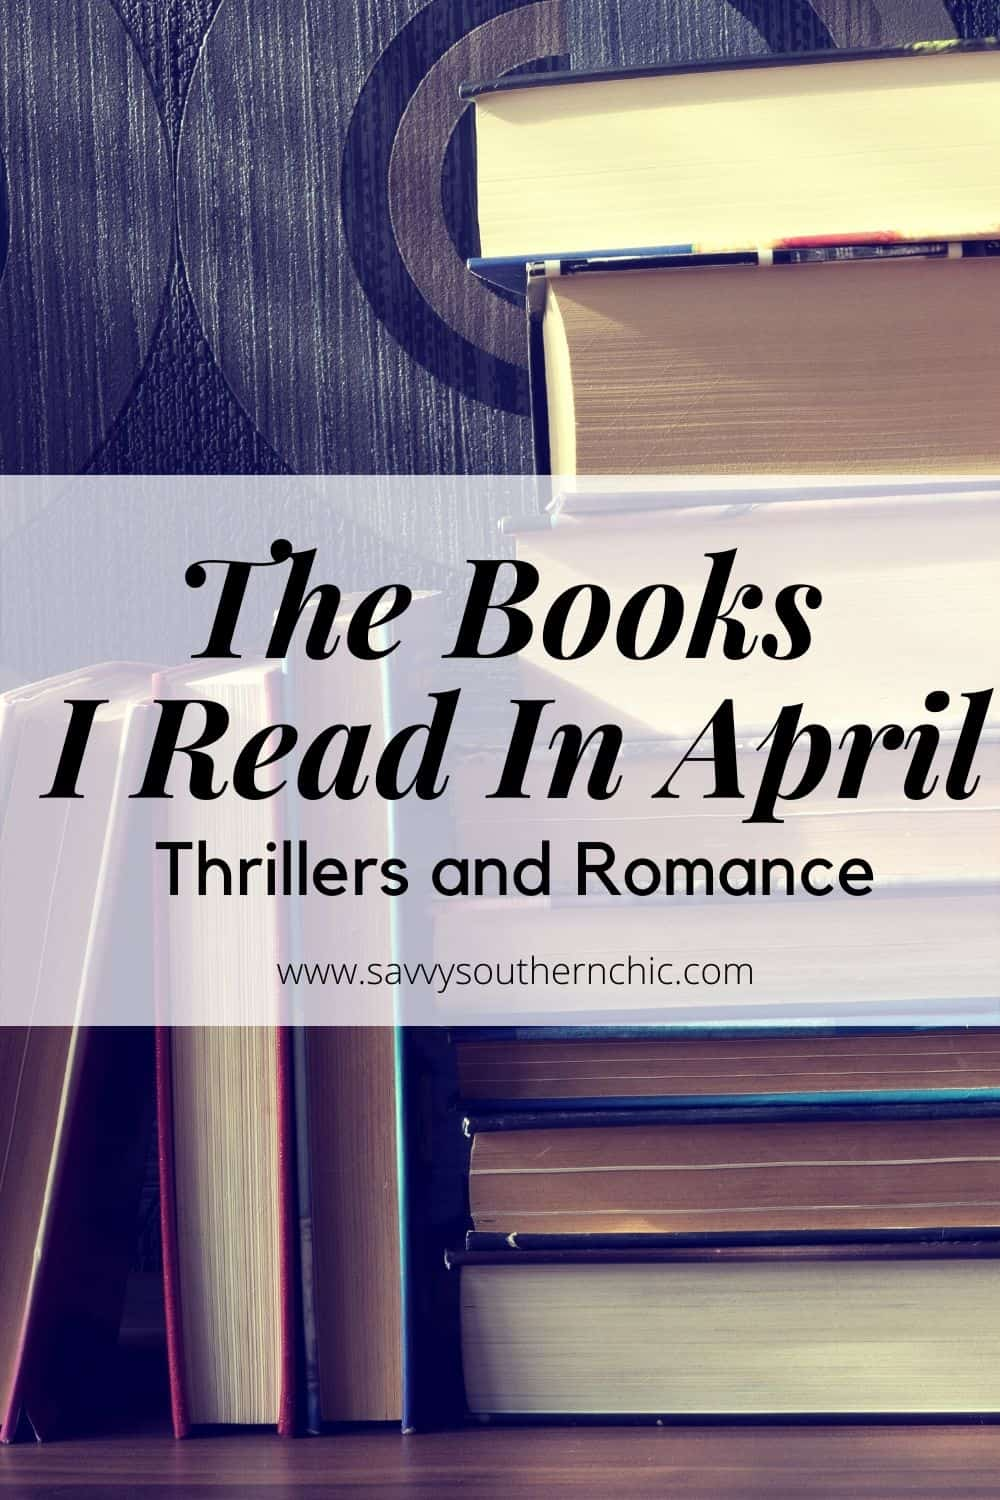 The Books I Read in April- Thrillers and Romance